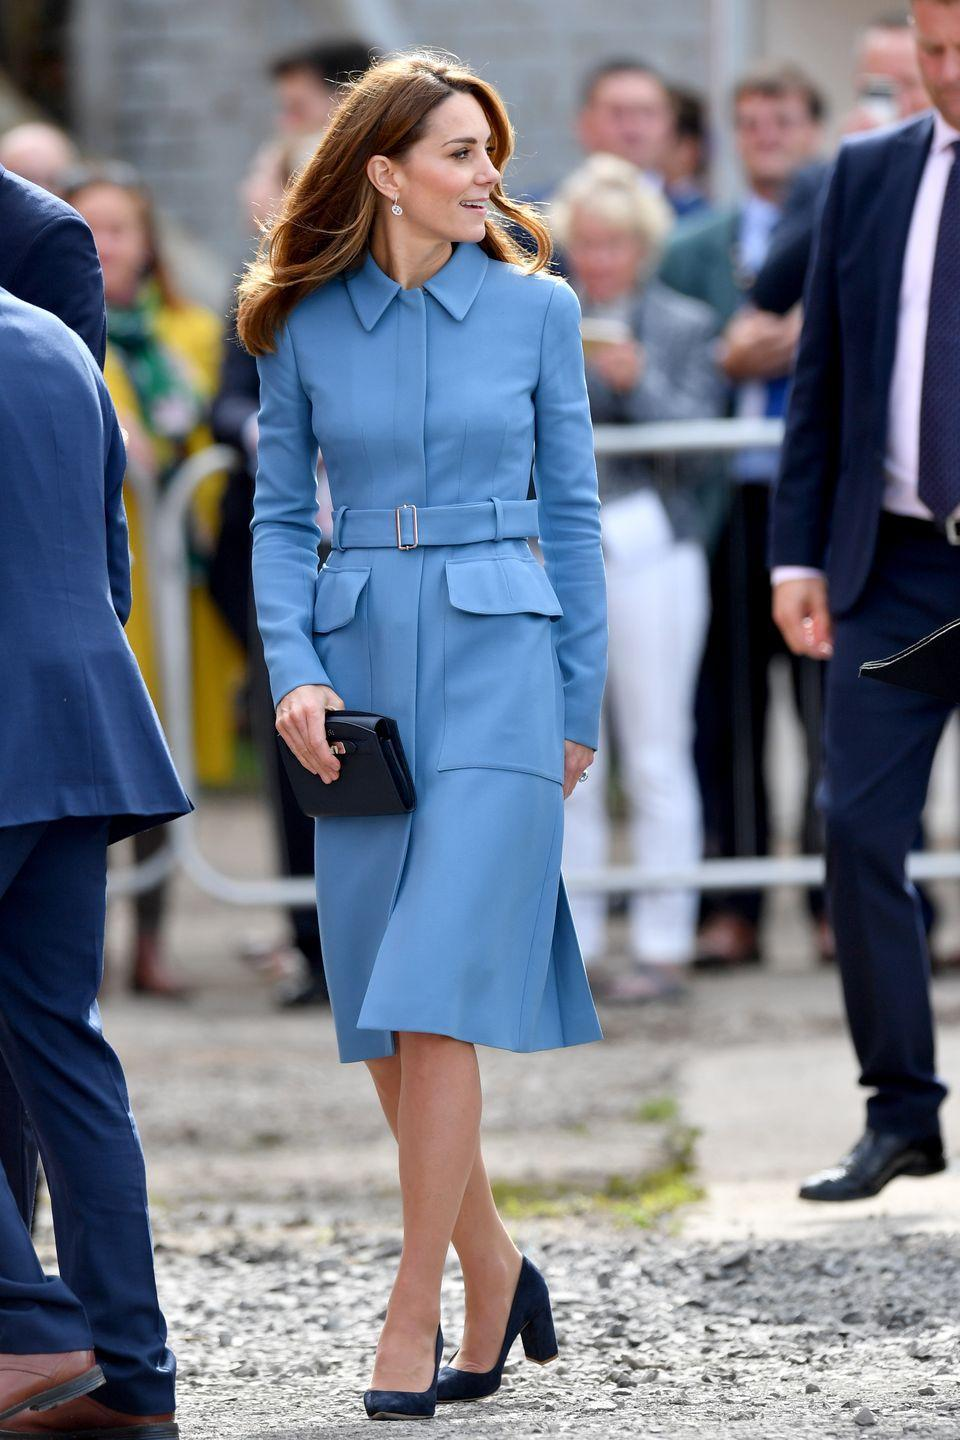 """<p>Kate often rewears this powder blue, belted McQueen coat, featuring large pockets. She chose the outerwear here for the naming ceremony for the boat, the RSS Sir David Attenborough. She also <a href=""""https://www.townandcountrymag.com/style/fashion-trends/a29243564/kate-middleton-alexander-mcqueen-coat-david-attenborough-ship-naming-photos/"""" rel=""""nofollow noopener"""" target=""""_blank"""" data-ylk=""""slk:previously wore this coat in 2014 and in 2016"""" class=""""link rapid-noclick-resp"""">previously wore this coat in 2014 and in 2016</a>.</p>"""